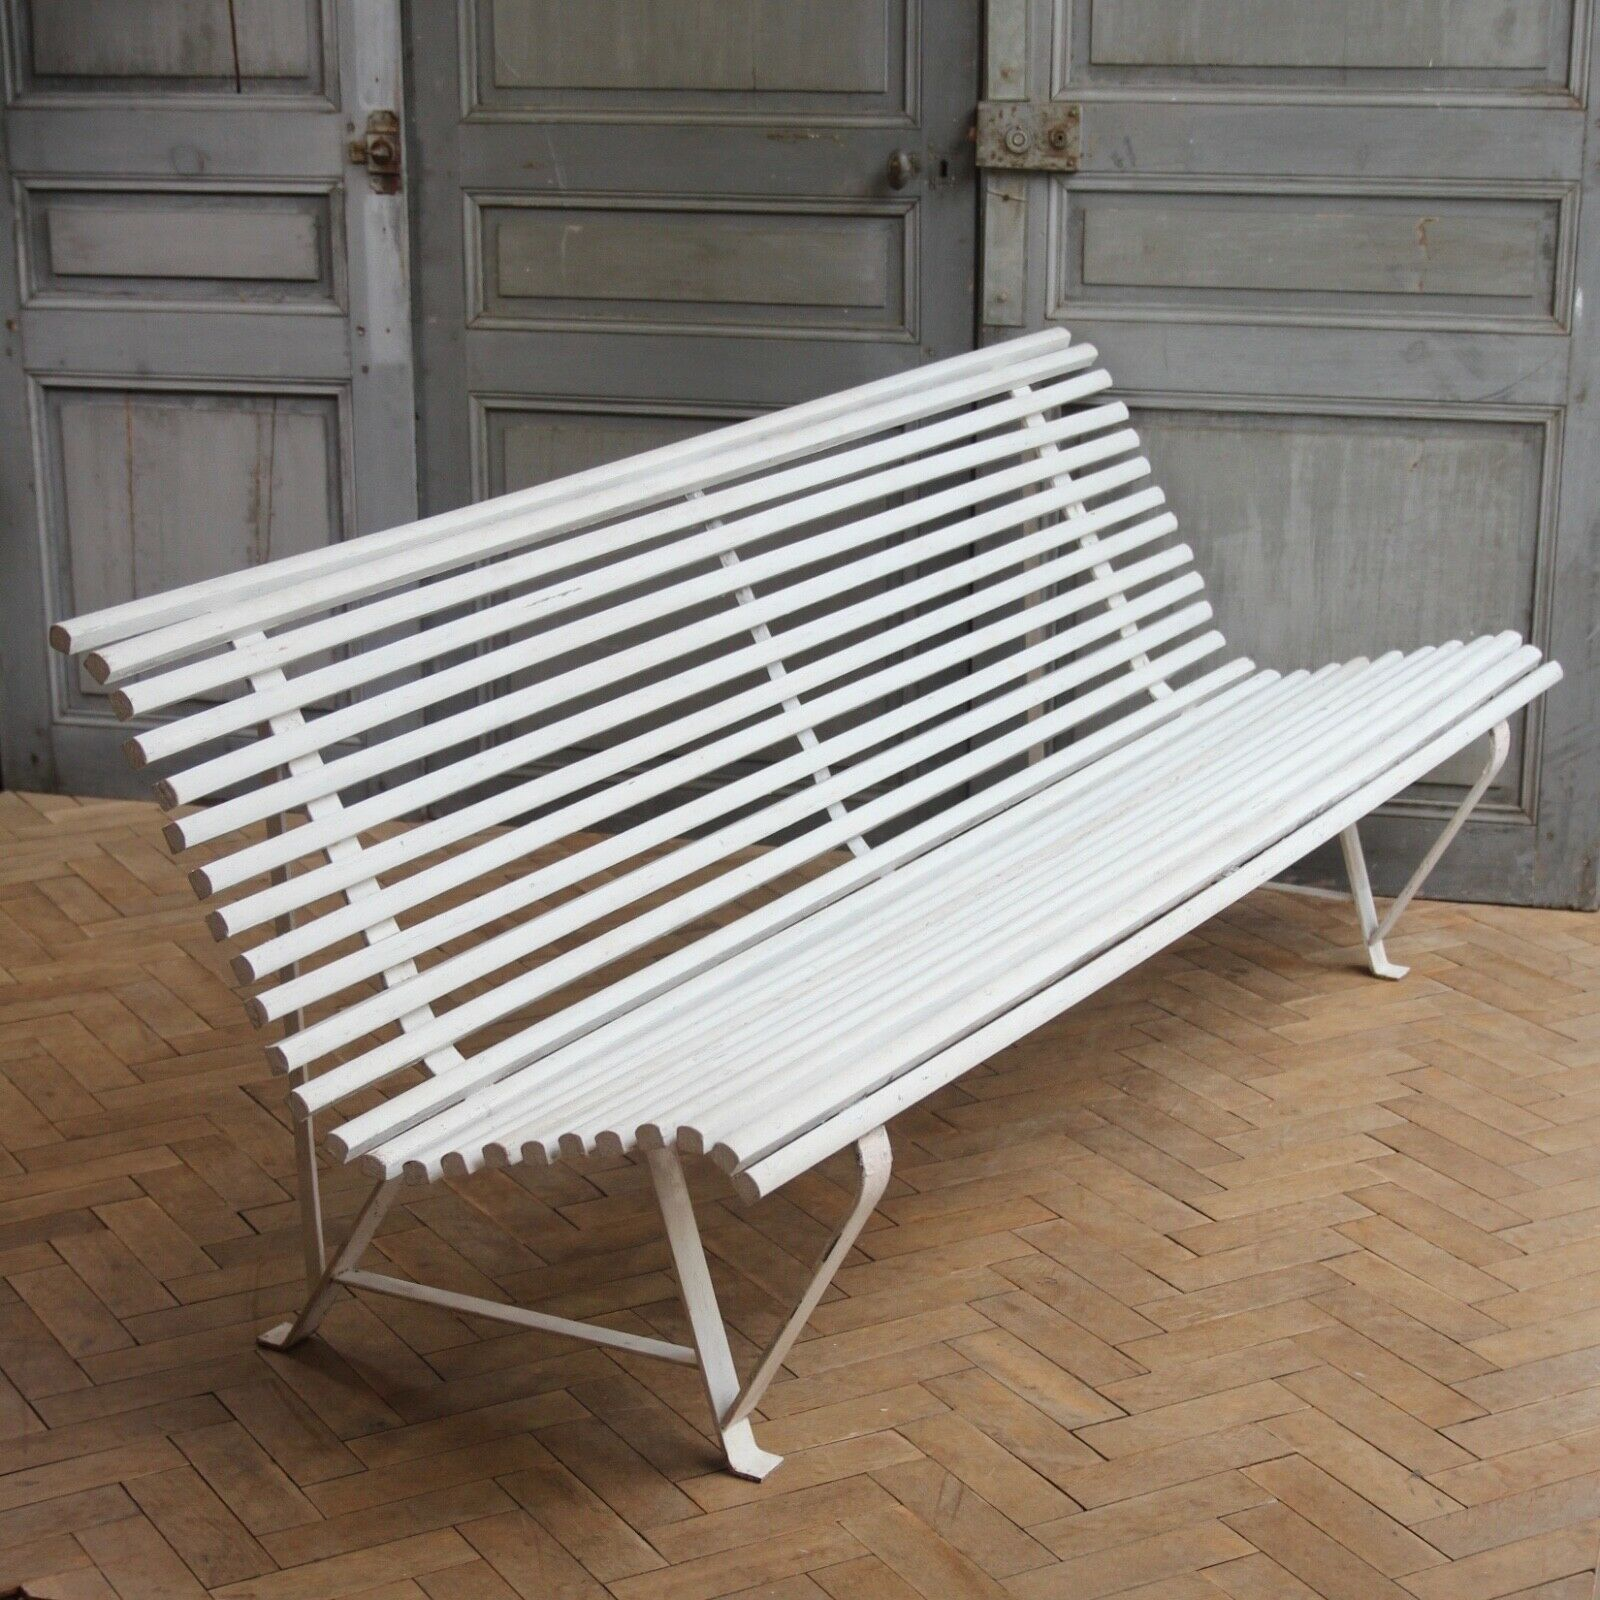 Pleasant Vintage French White Wooden Slatted Garden Bench Mid Century Caraccident5 Cool Chair Designs And Ideas Caraccident5Info